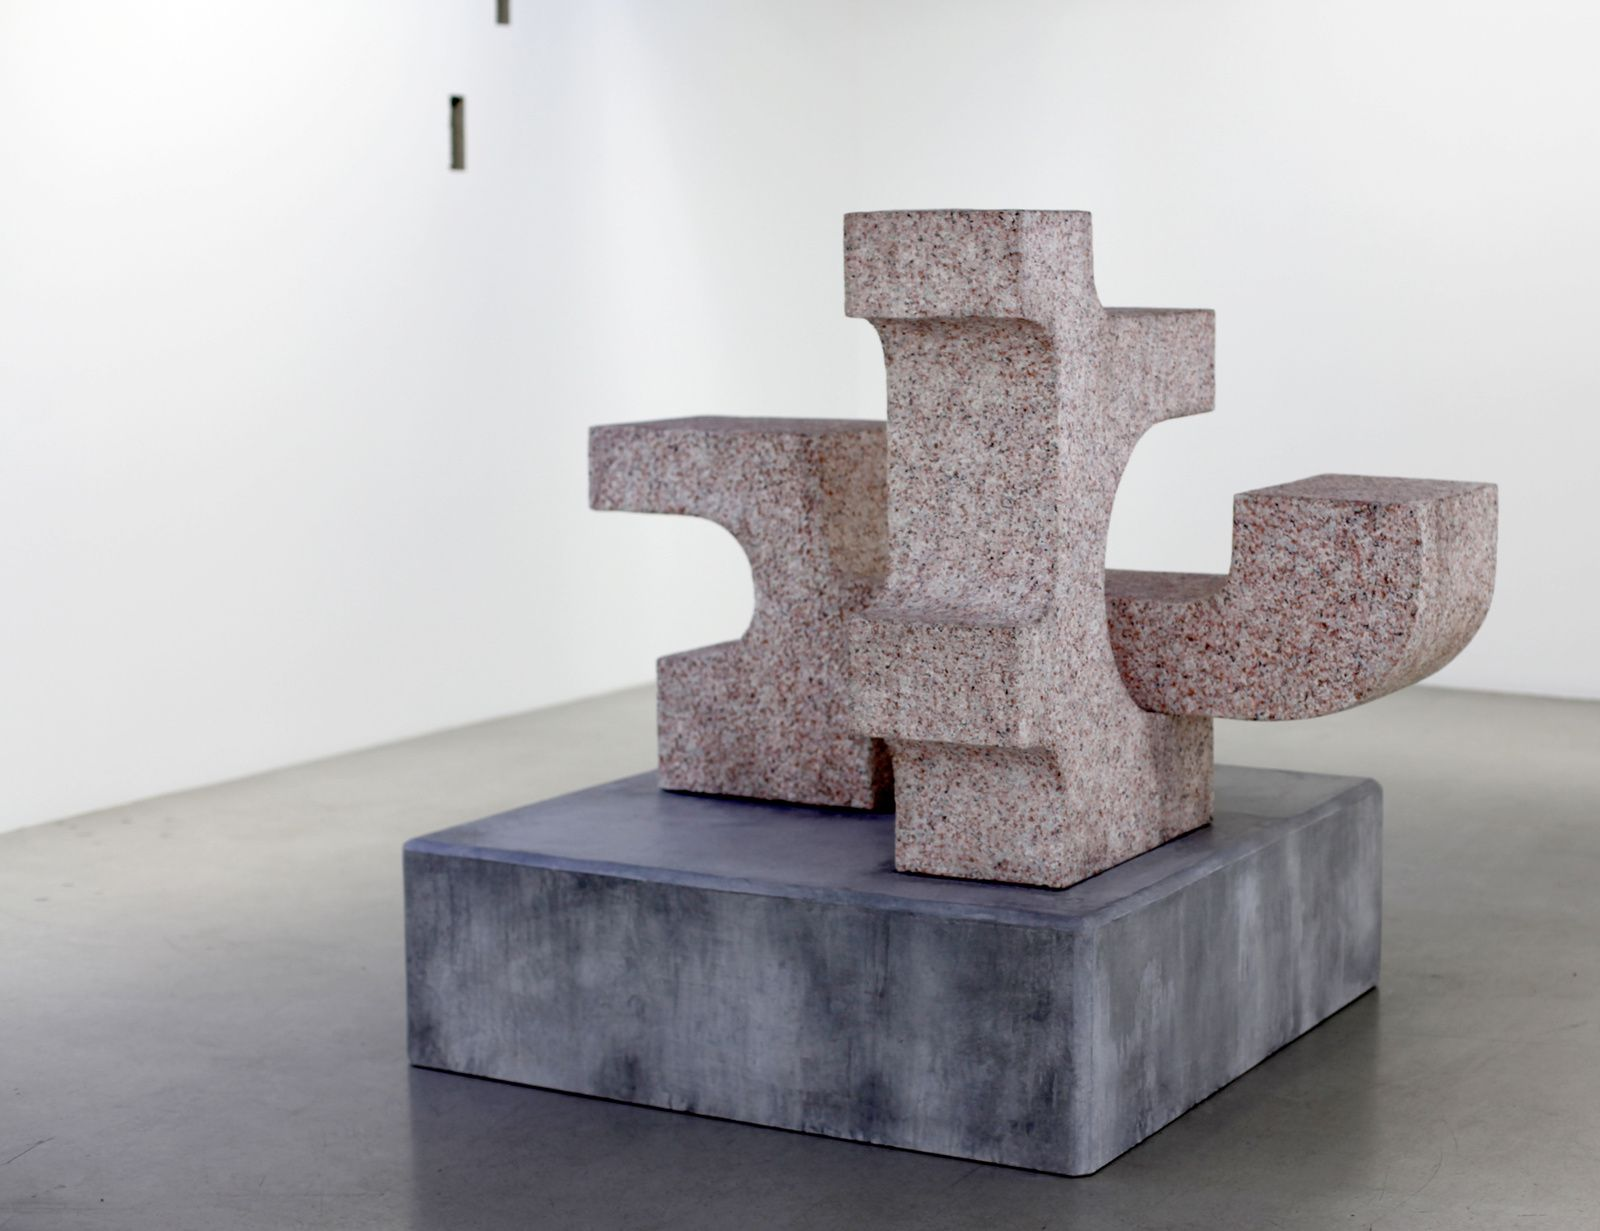 """Ravage with granite (after André Tommasini)"", 2014 de Valentin Carron Courtesy Galerie  Kamel Mennour © Photo Éric Simon"